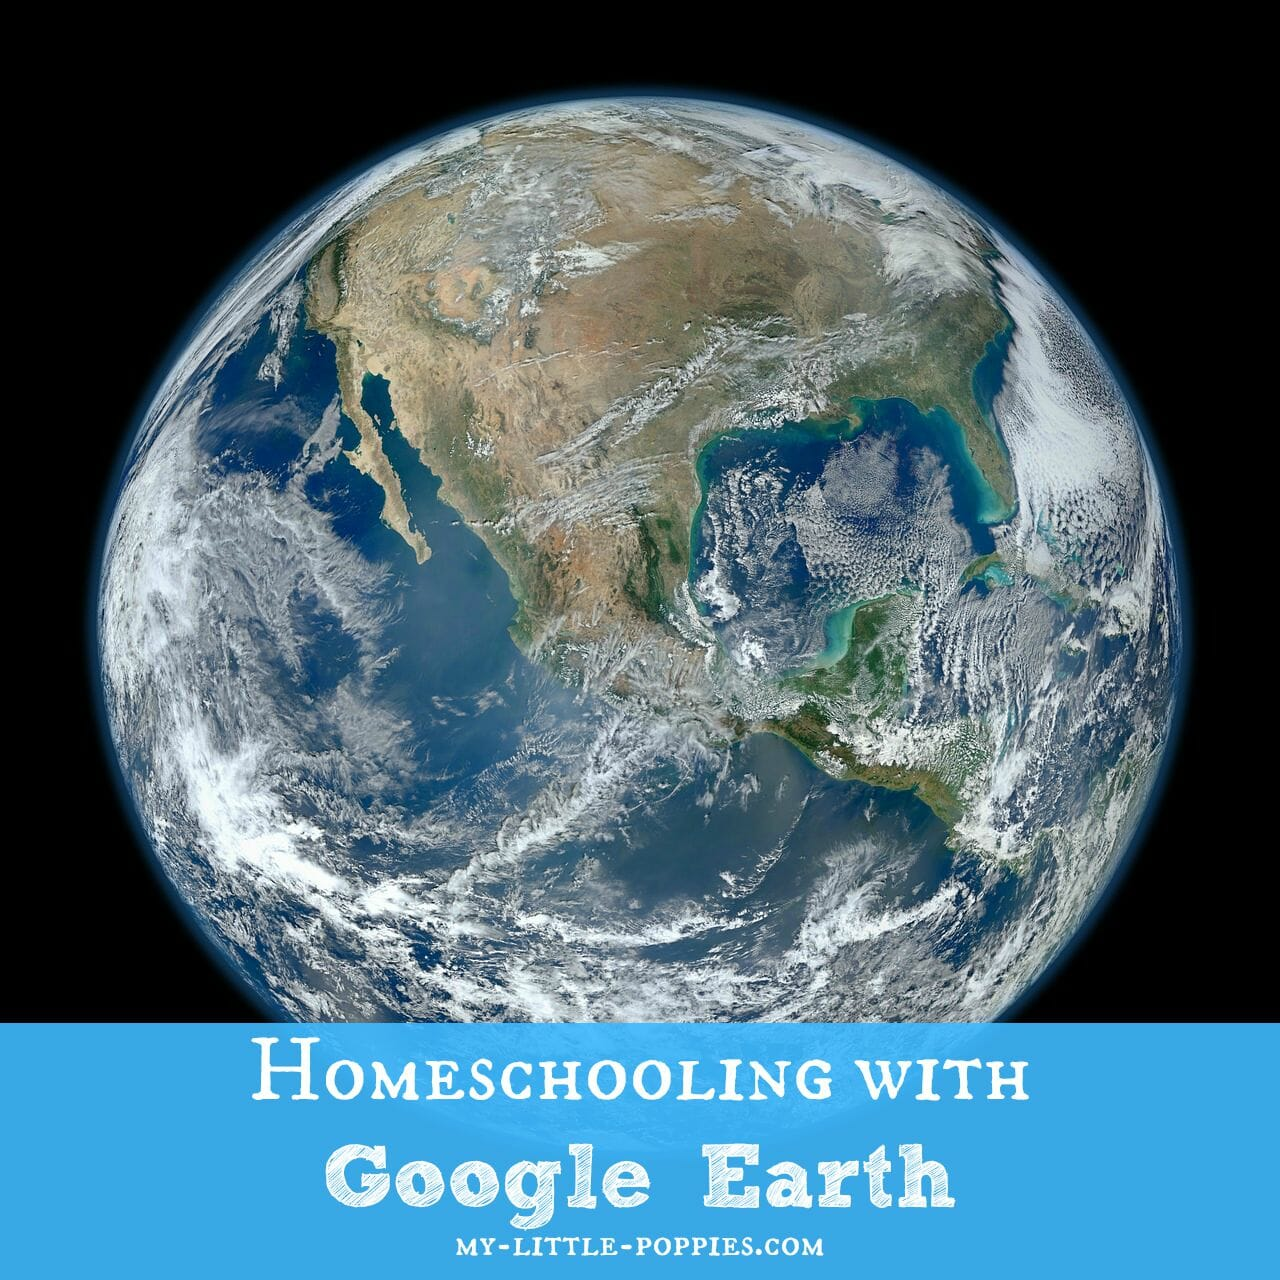 Homeschooling with Google Earth